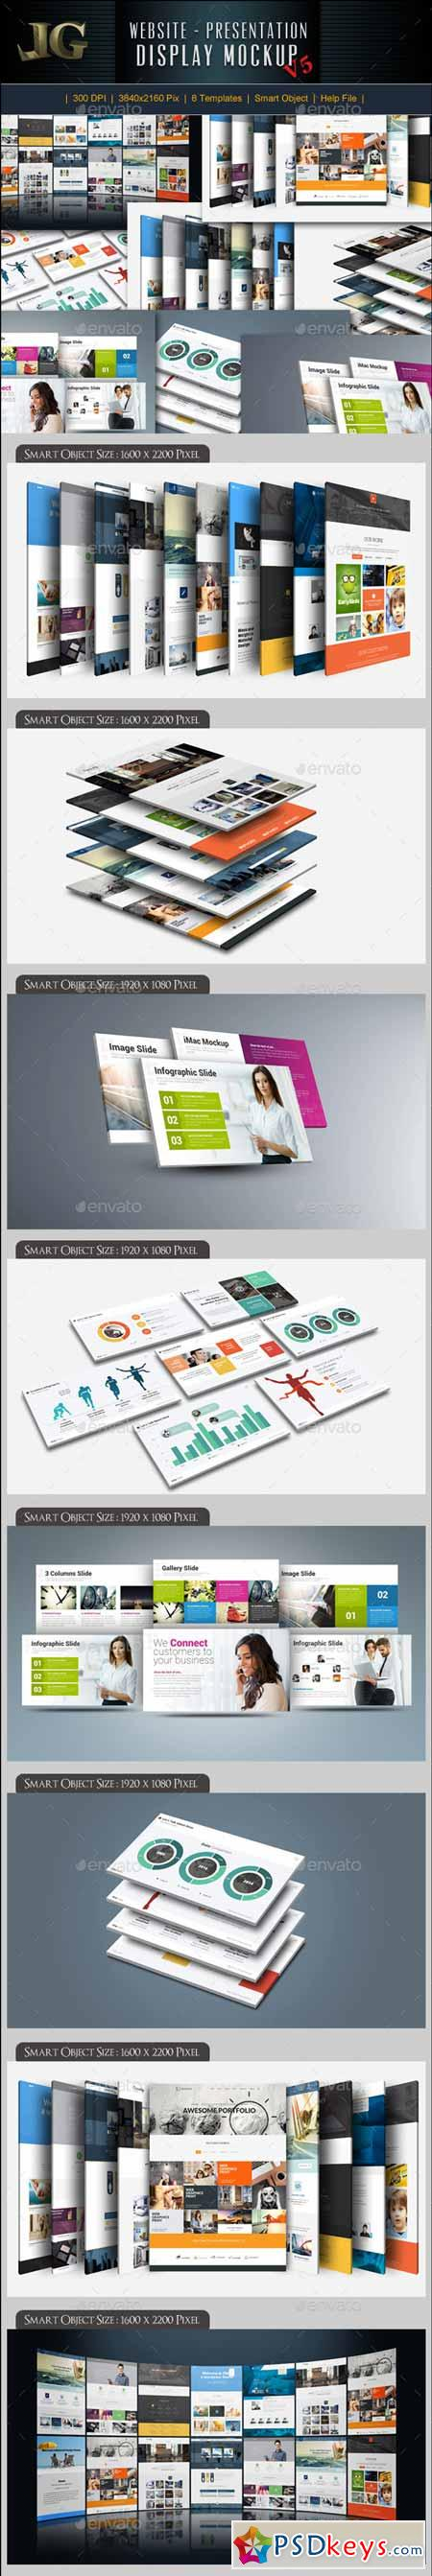 Website Presentation Mockup 10527684